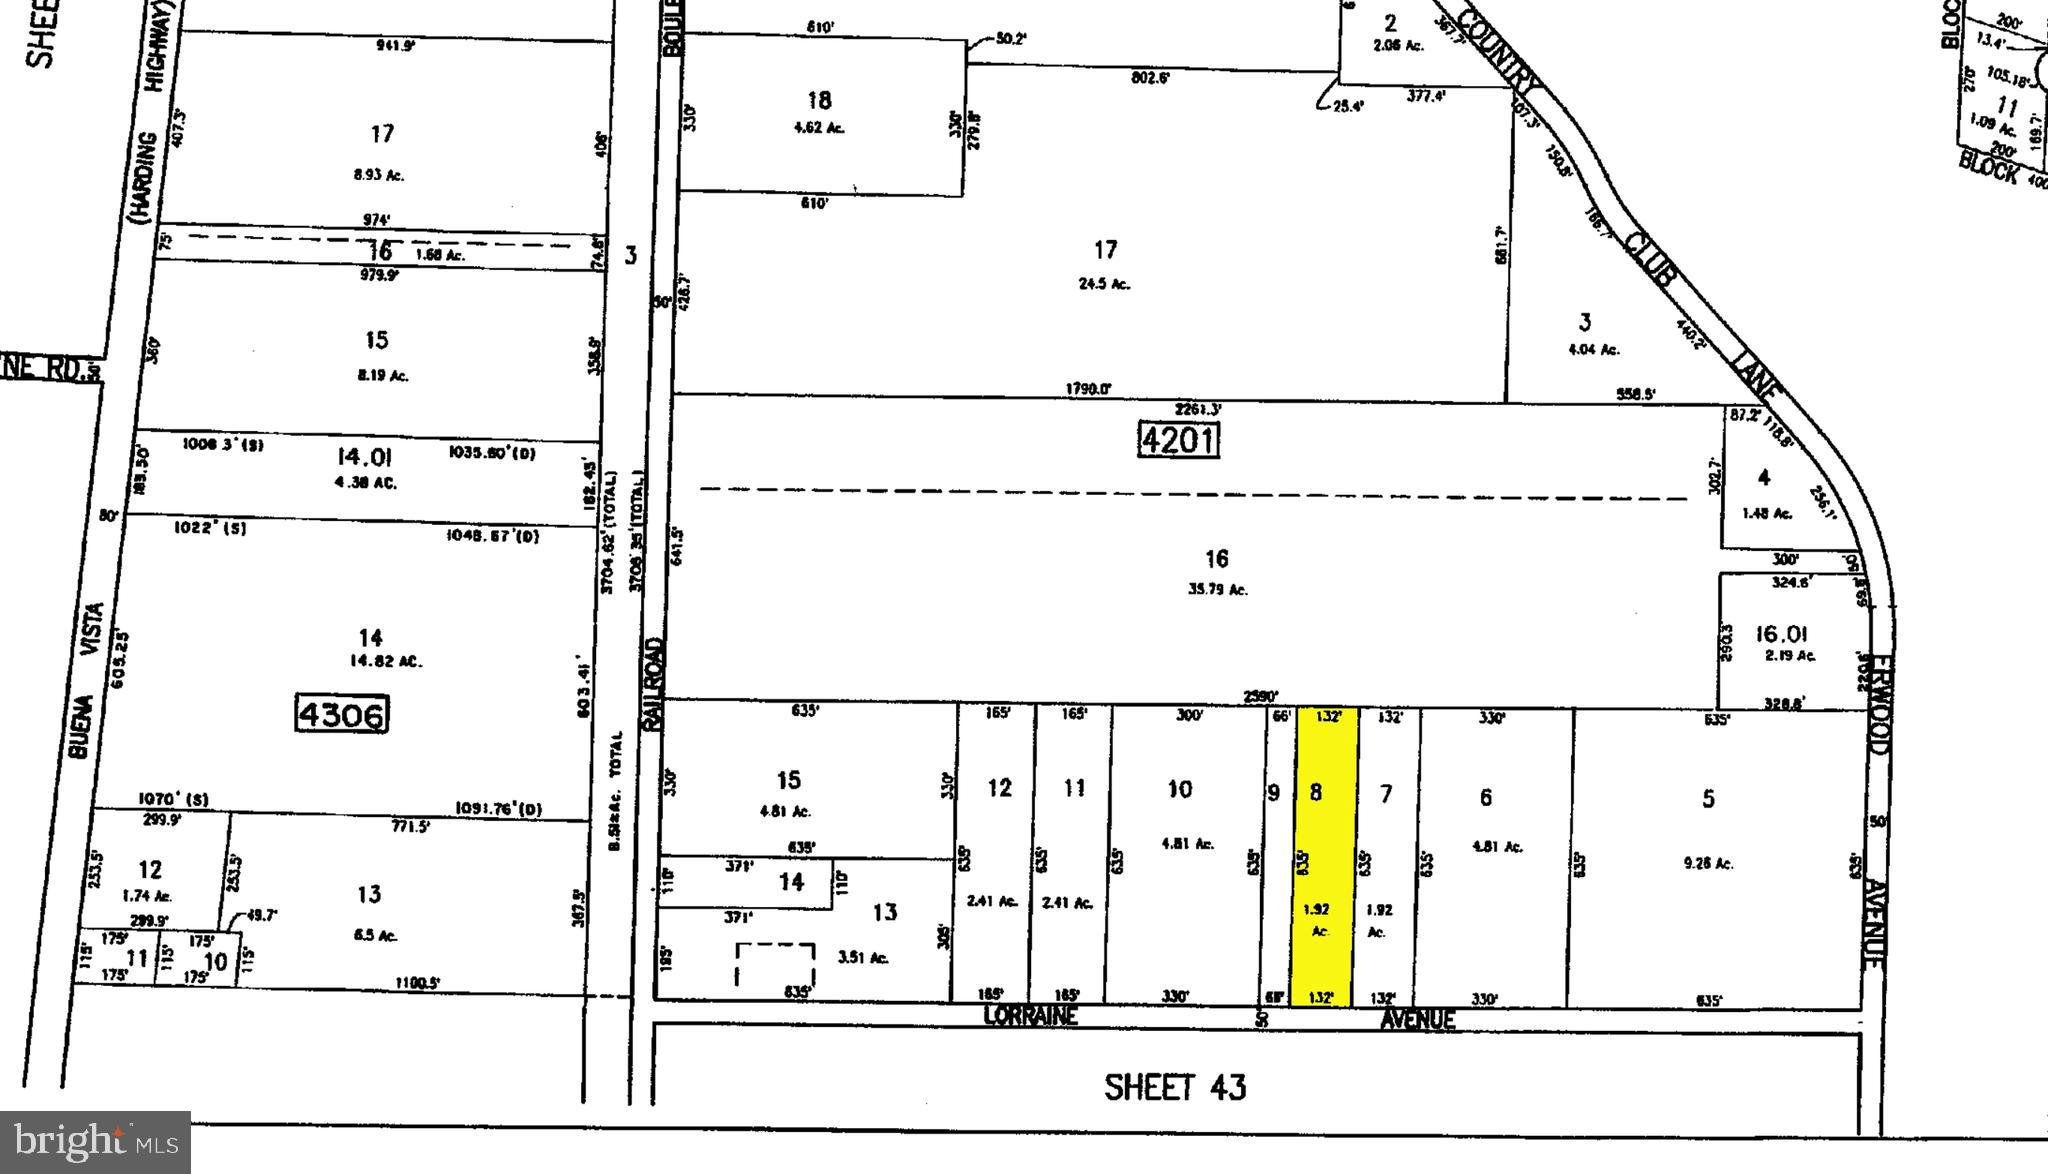 Lot 8 LORRAINE AVENUE, RICHLAND, NJ 08350